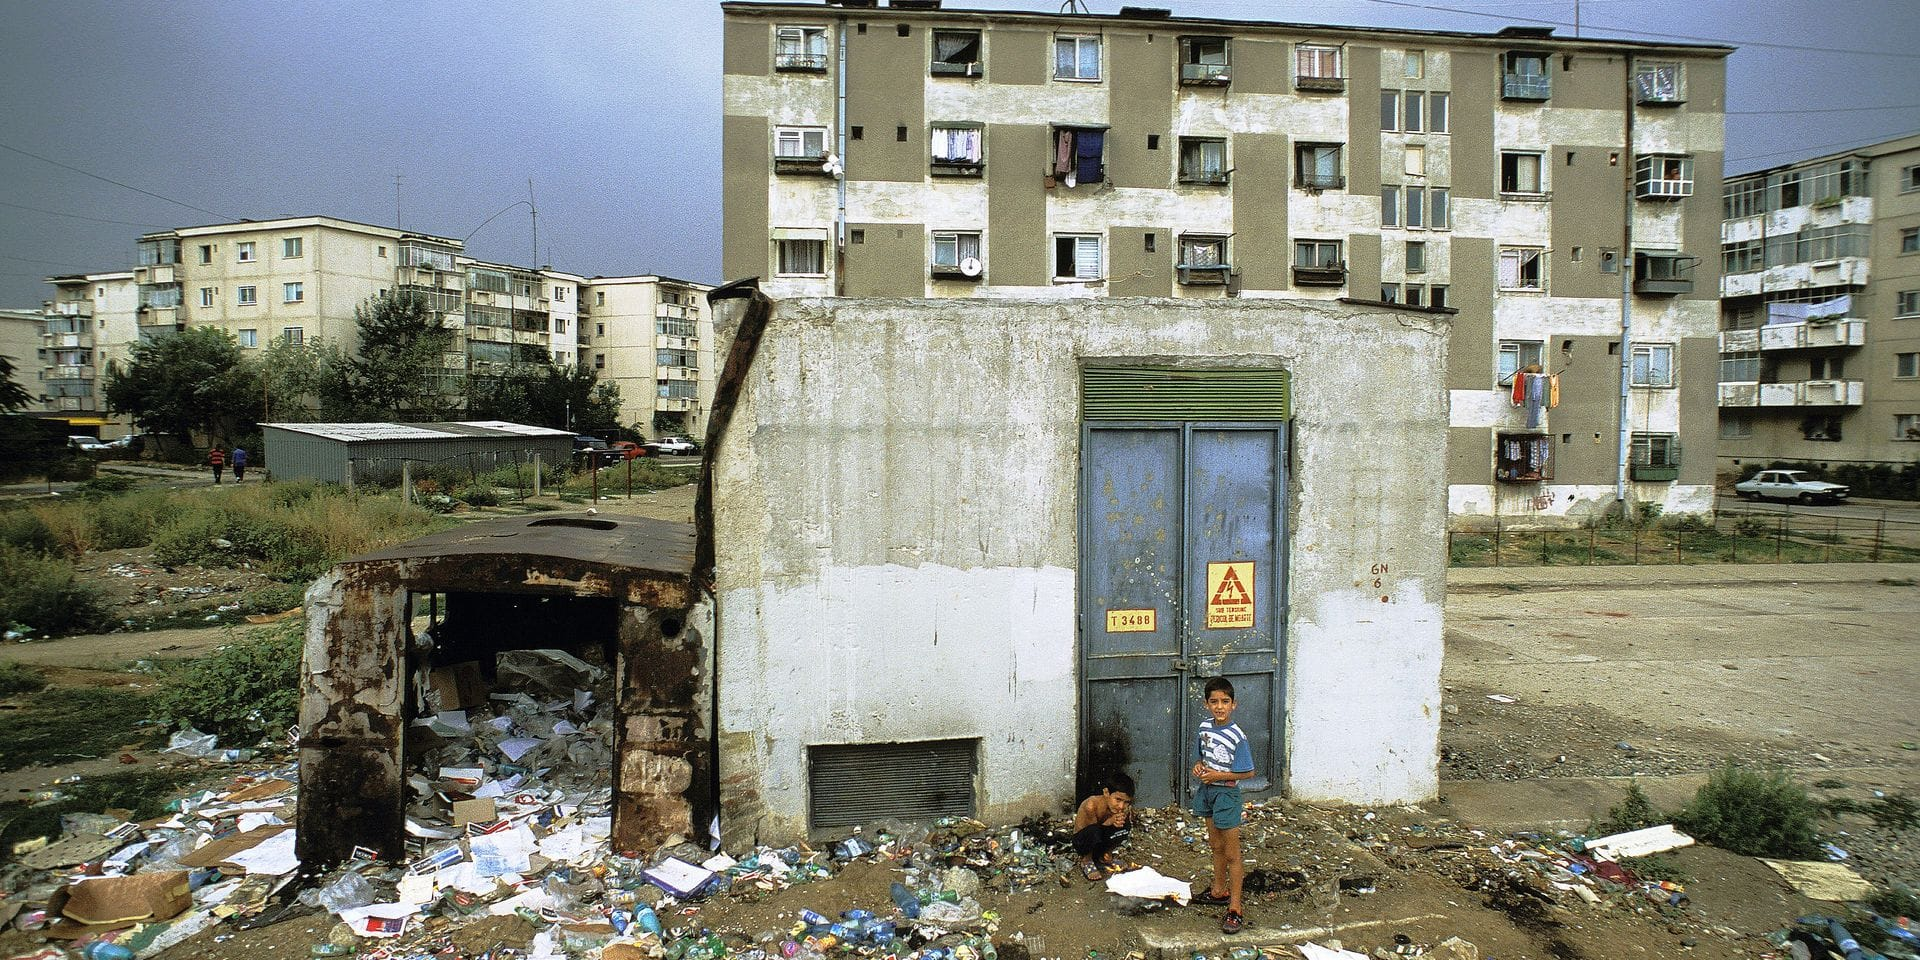 Romania, Bucarest, two gipsy kids seen from above near a garbage dump, garbages all around, buildings in the background